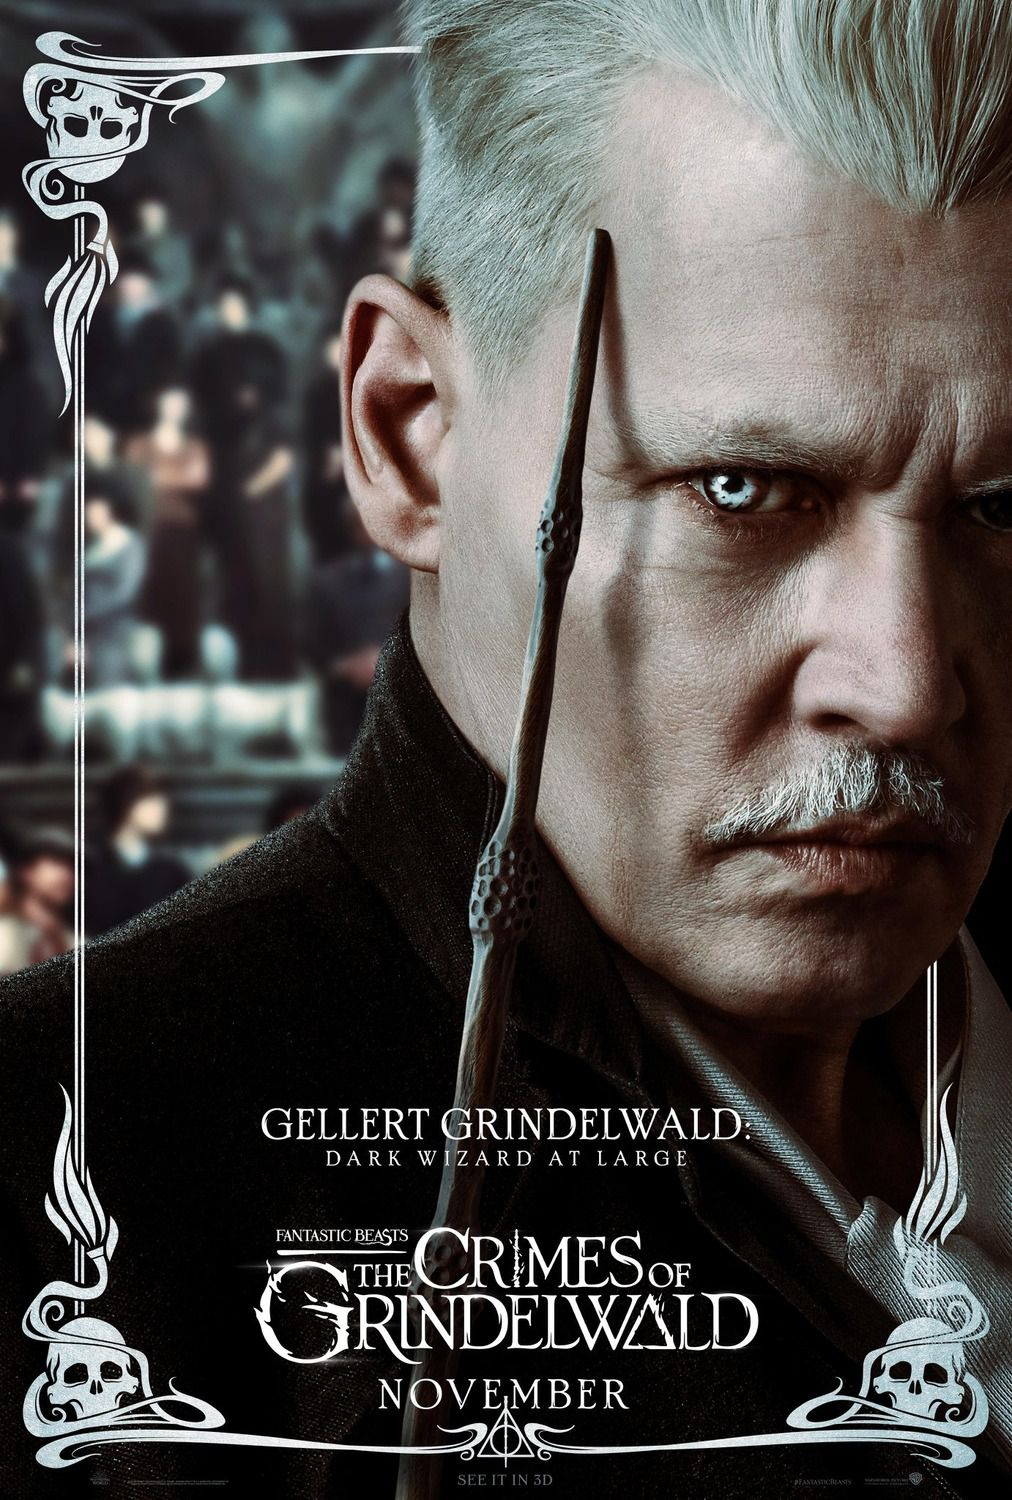 Gellert Grindelwald dark wizard at large